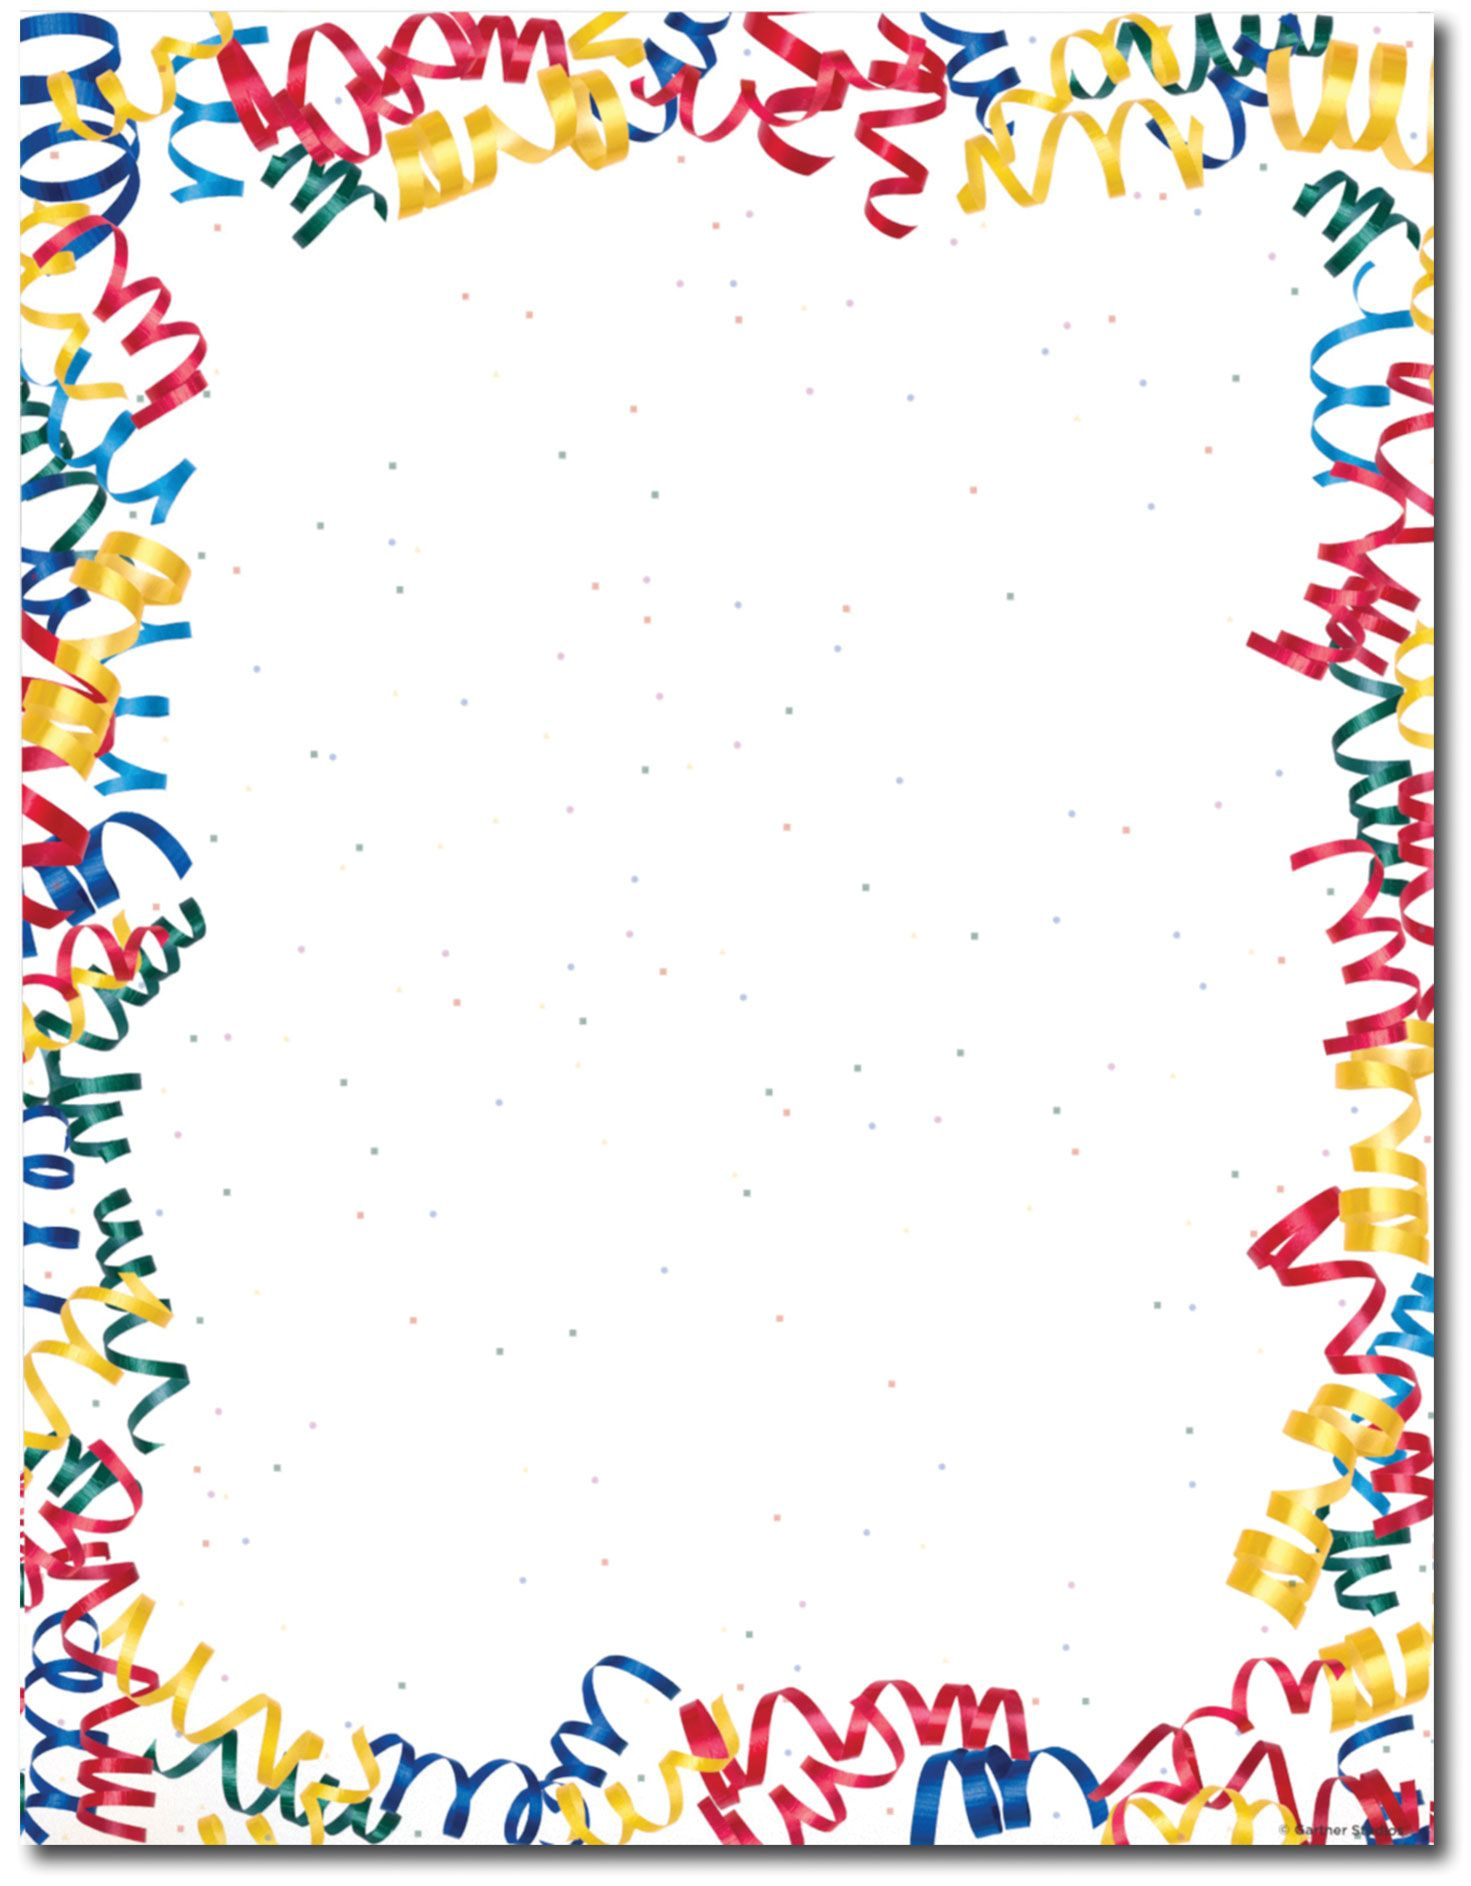 Streamers Confetti And Frames Art Borders Clip